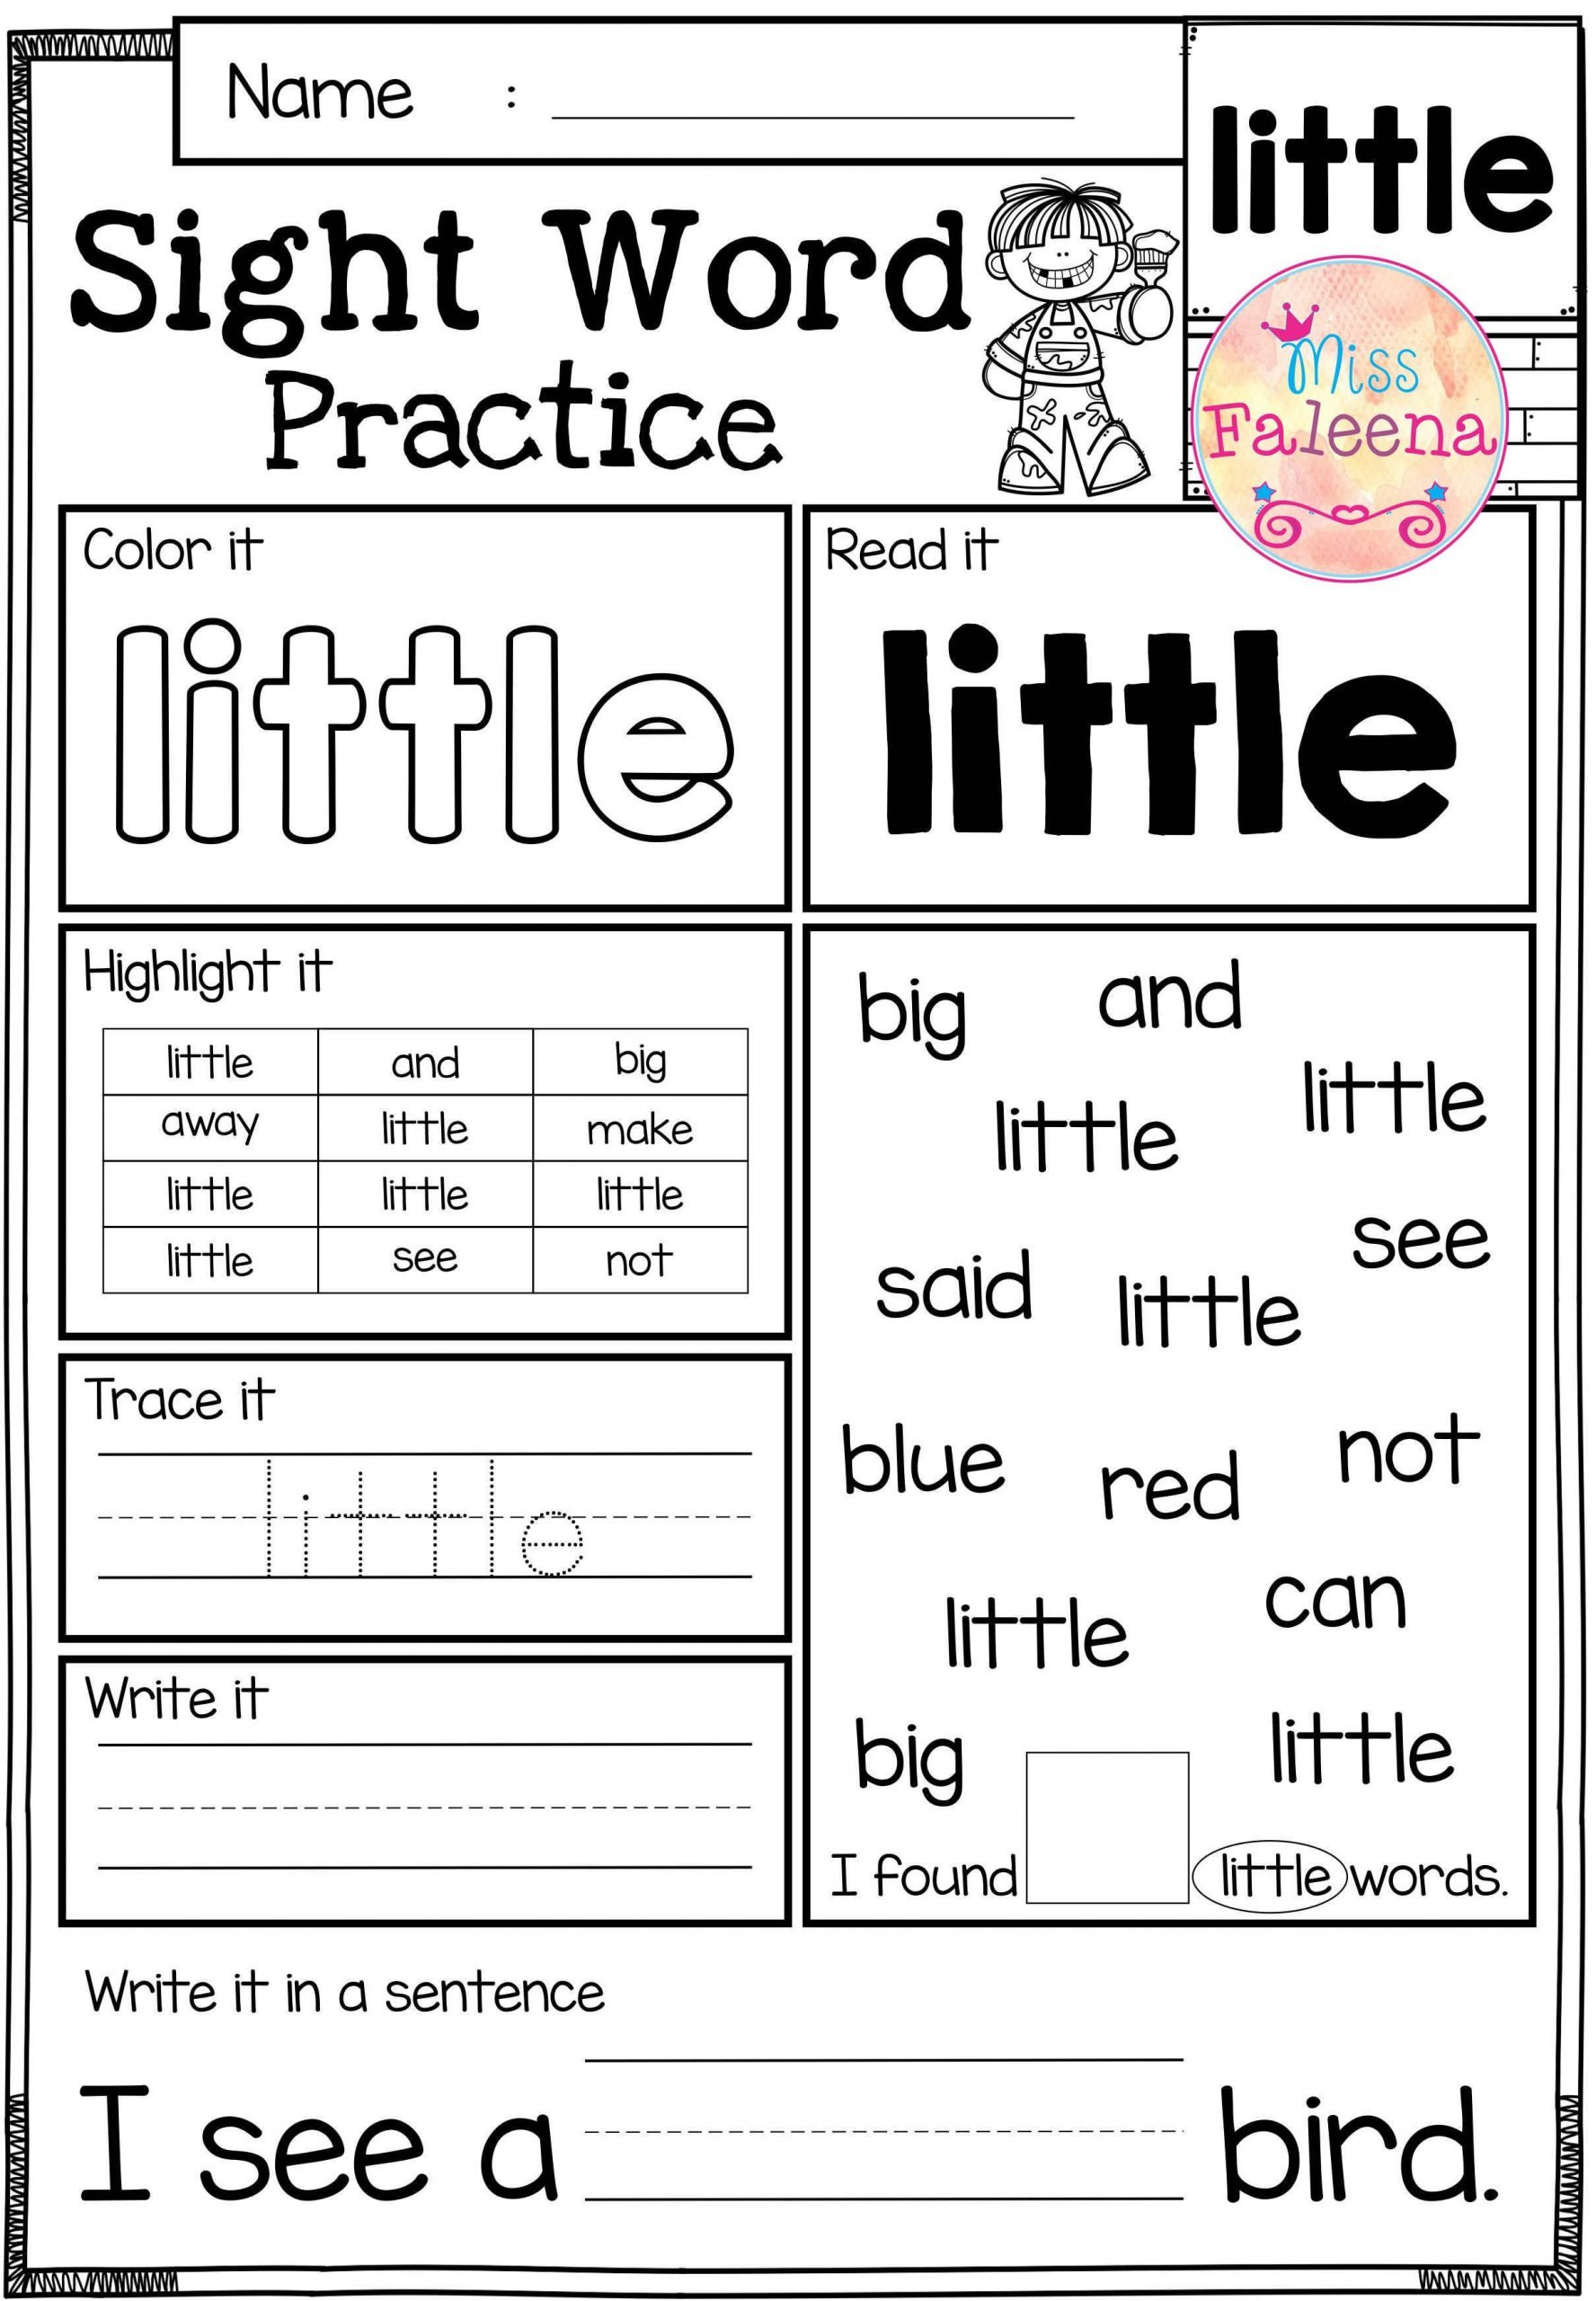 Kindergarten Reading Worksheets Sight Words these Sight Word Practice Pages are Great for Kindergarten